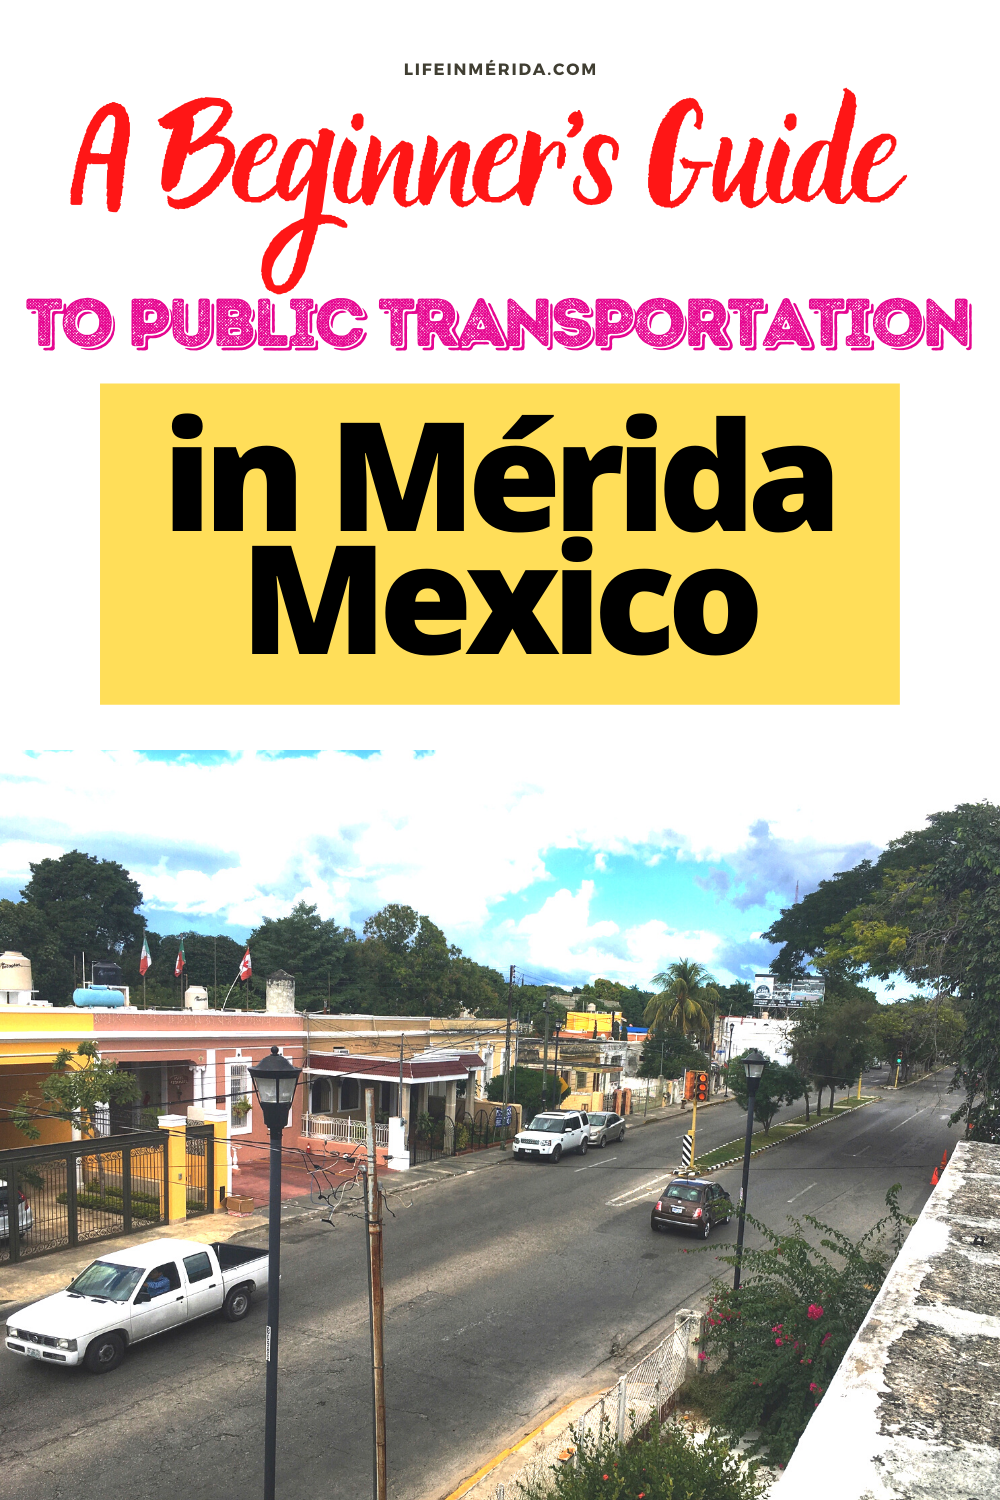 A Beginner's Guide to Public Transportation in Mérida Mexico